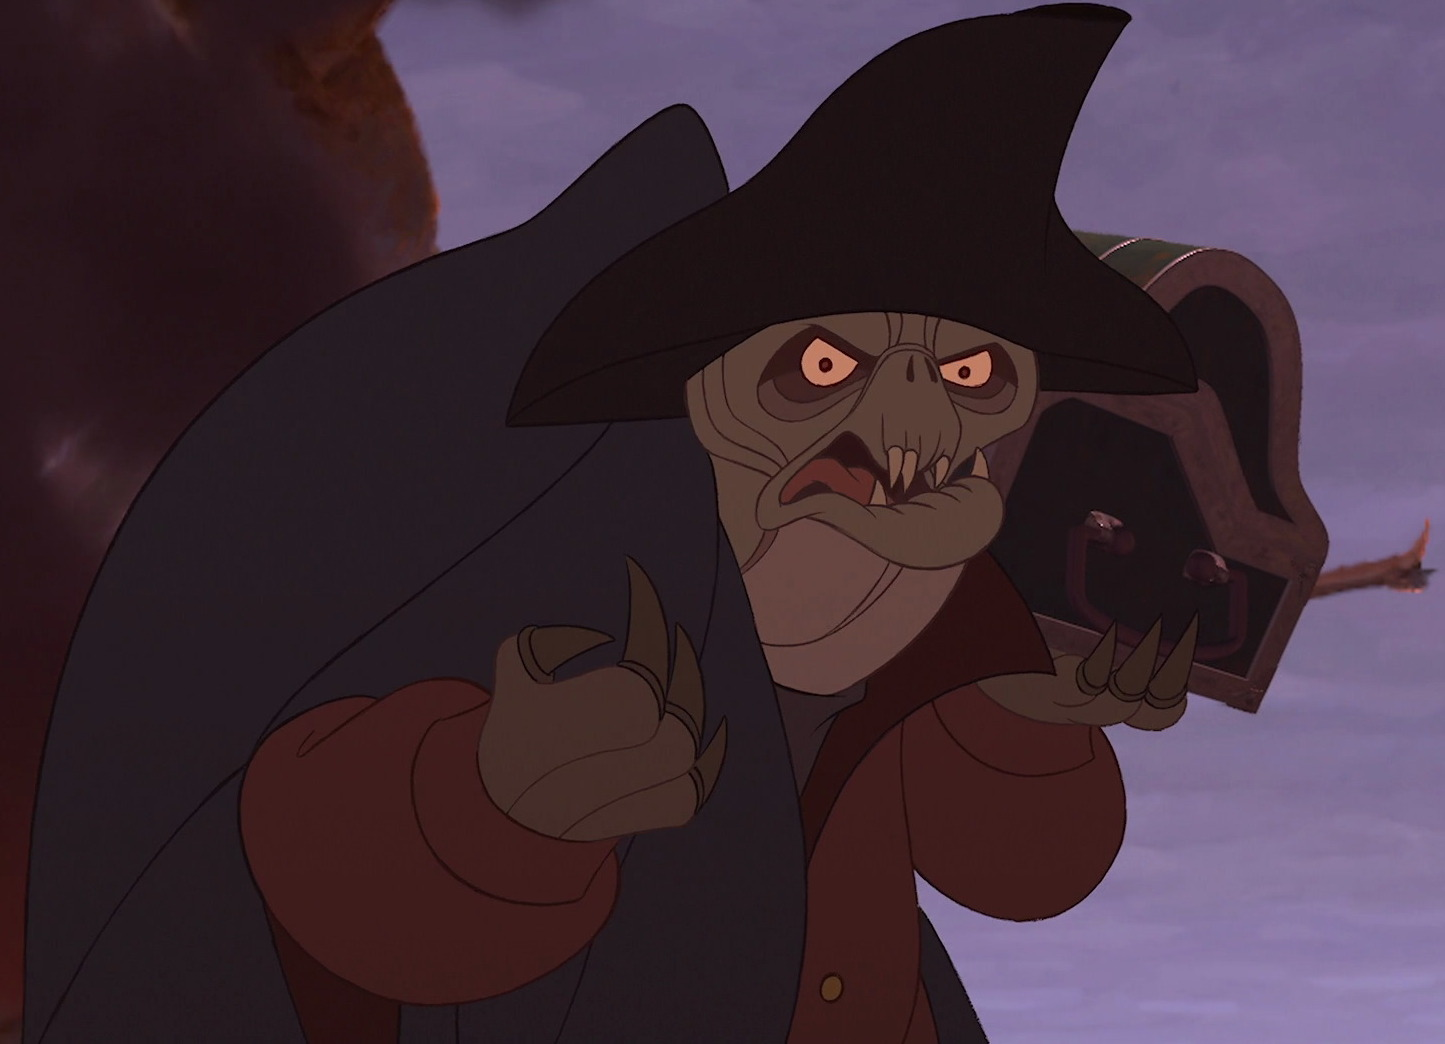 https://static.tvtropes.org/pmwiki/pub/images/Treasureplanet069.jpg